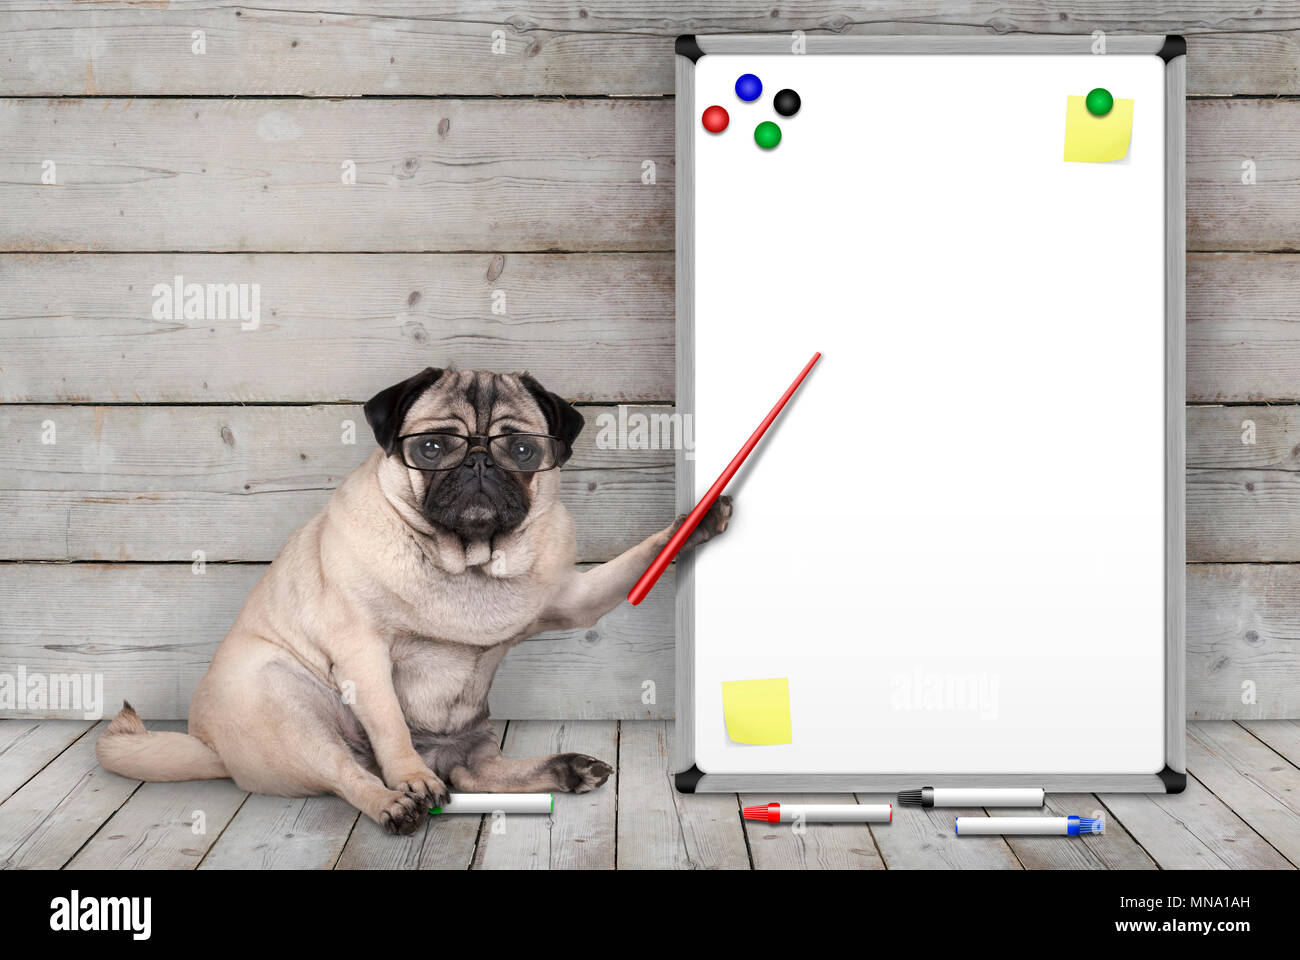 serious pug puppy dog sitting down, pointing at blank white board with yellow notes and magnets, on wooden floor and background Stock Photo